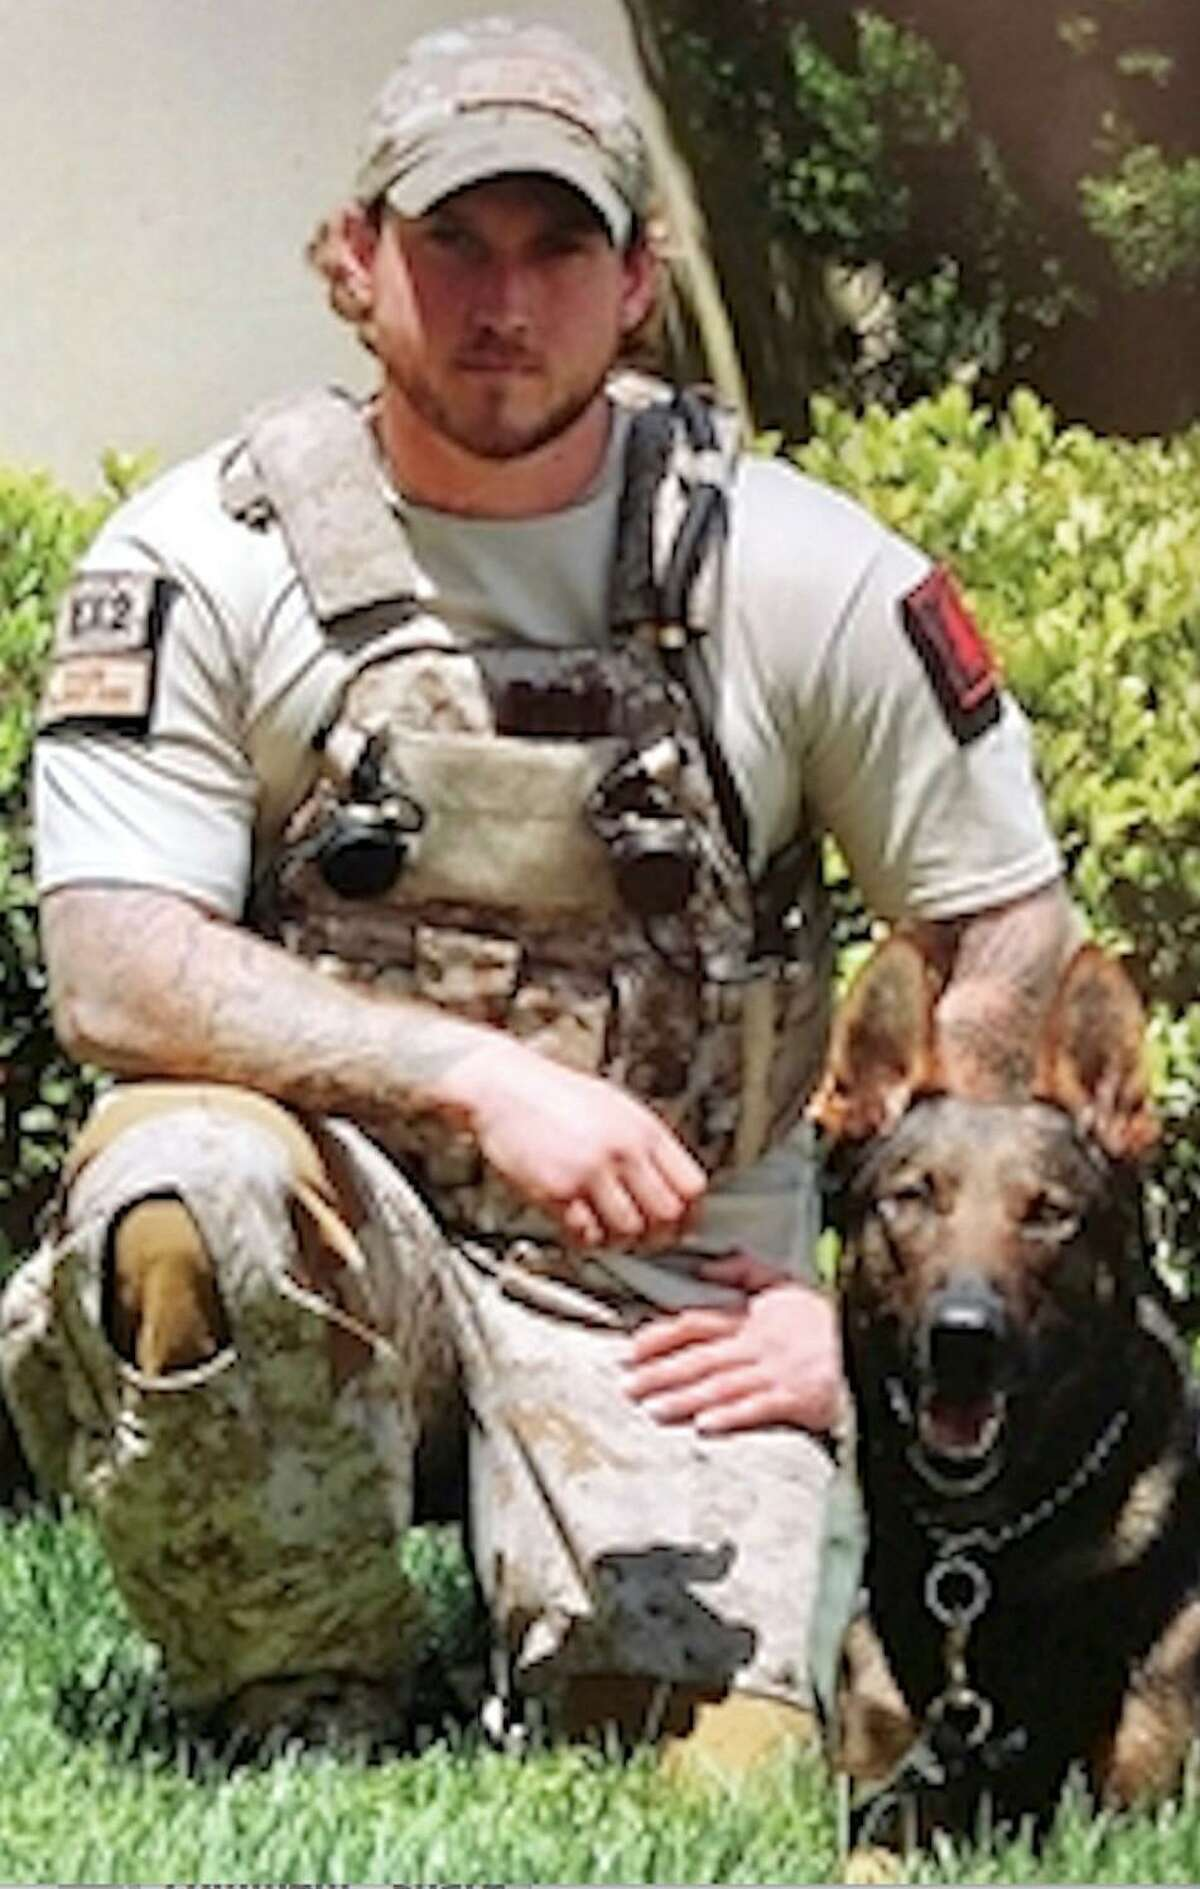 """Will Chesney, the K9 handler for the special task force that killed Osama bin Laden, is in the area promoting his new book, """"No Ordinary Dog: My Partner from the SEAL Teams to the Bin Laden Raid"""", which comes out April 21. The story is about Cairo, who served with Chesney through his military career."""